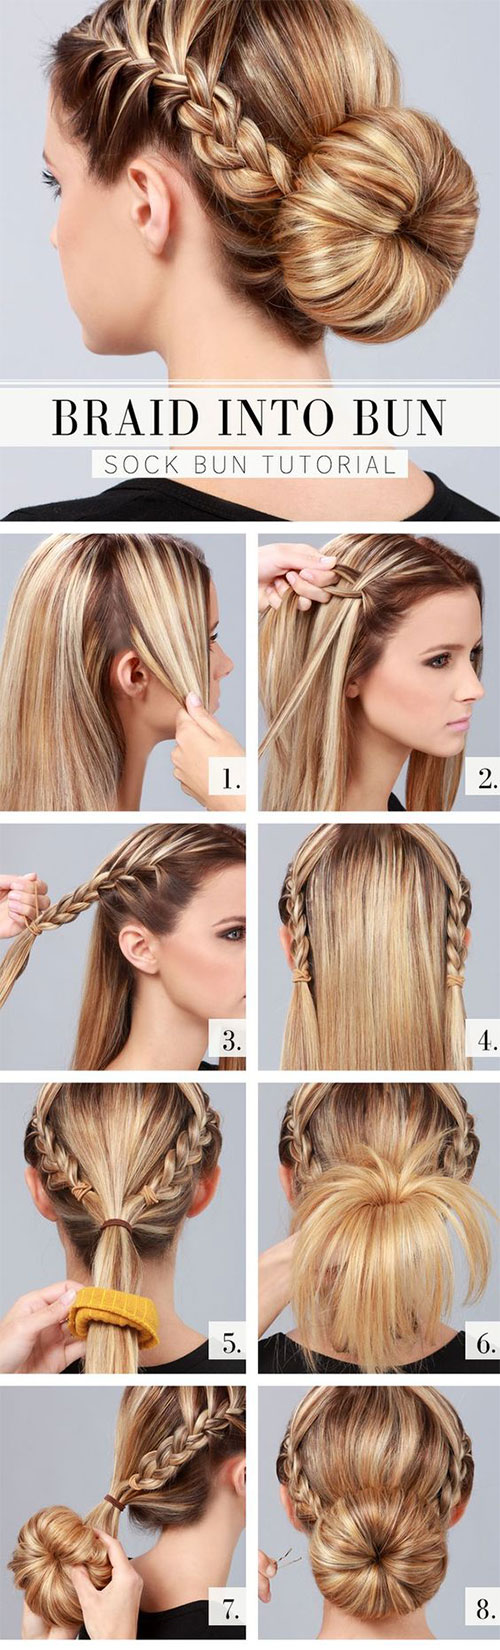 12-Easy-Step-By-Step-Summer-Hairstyle-Tutorials-For-Beginners-2017-5